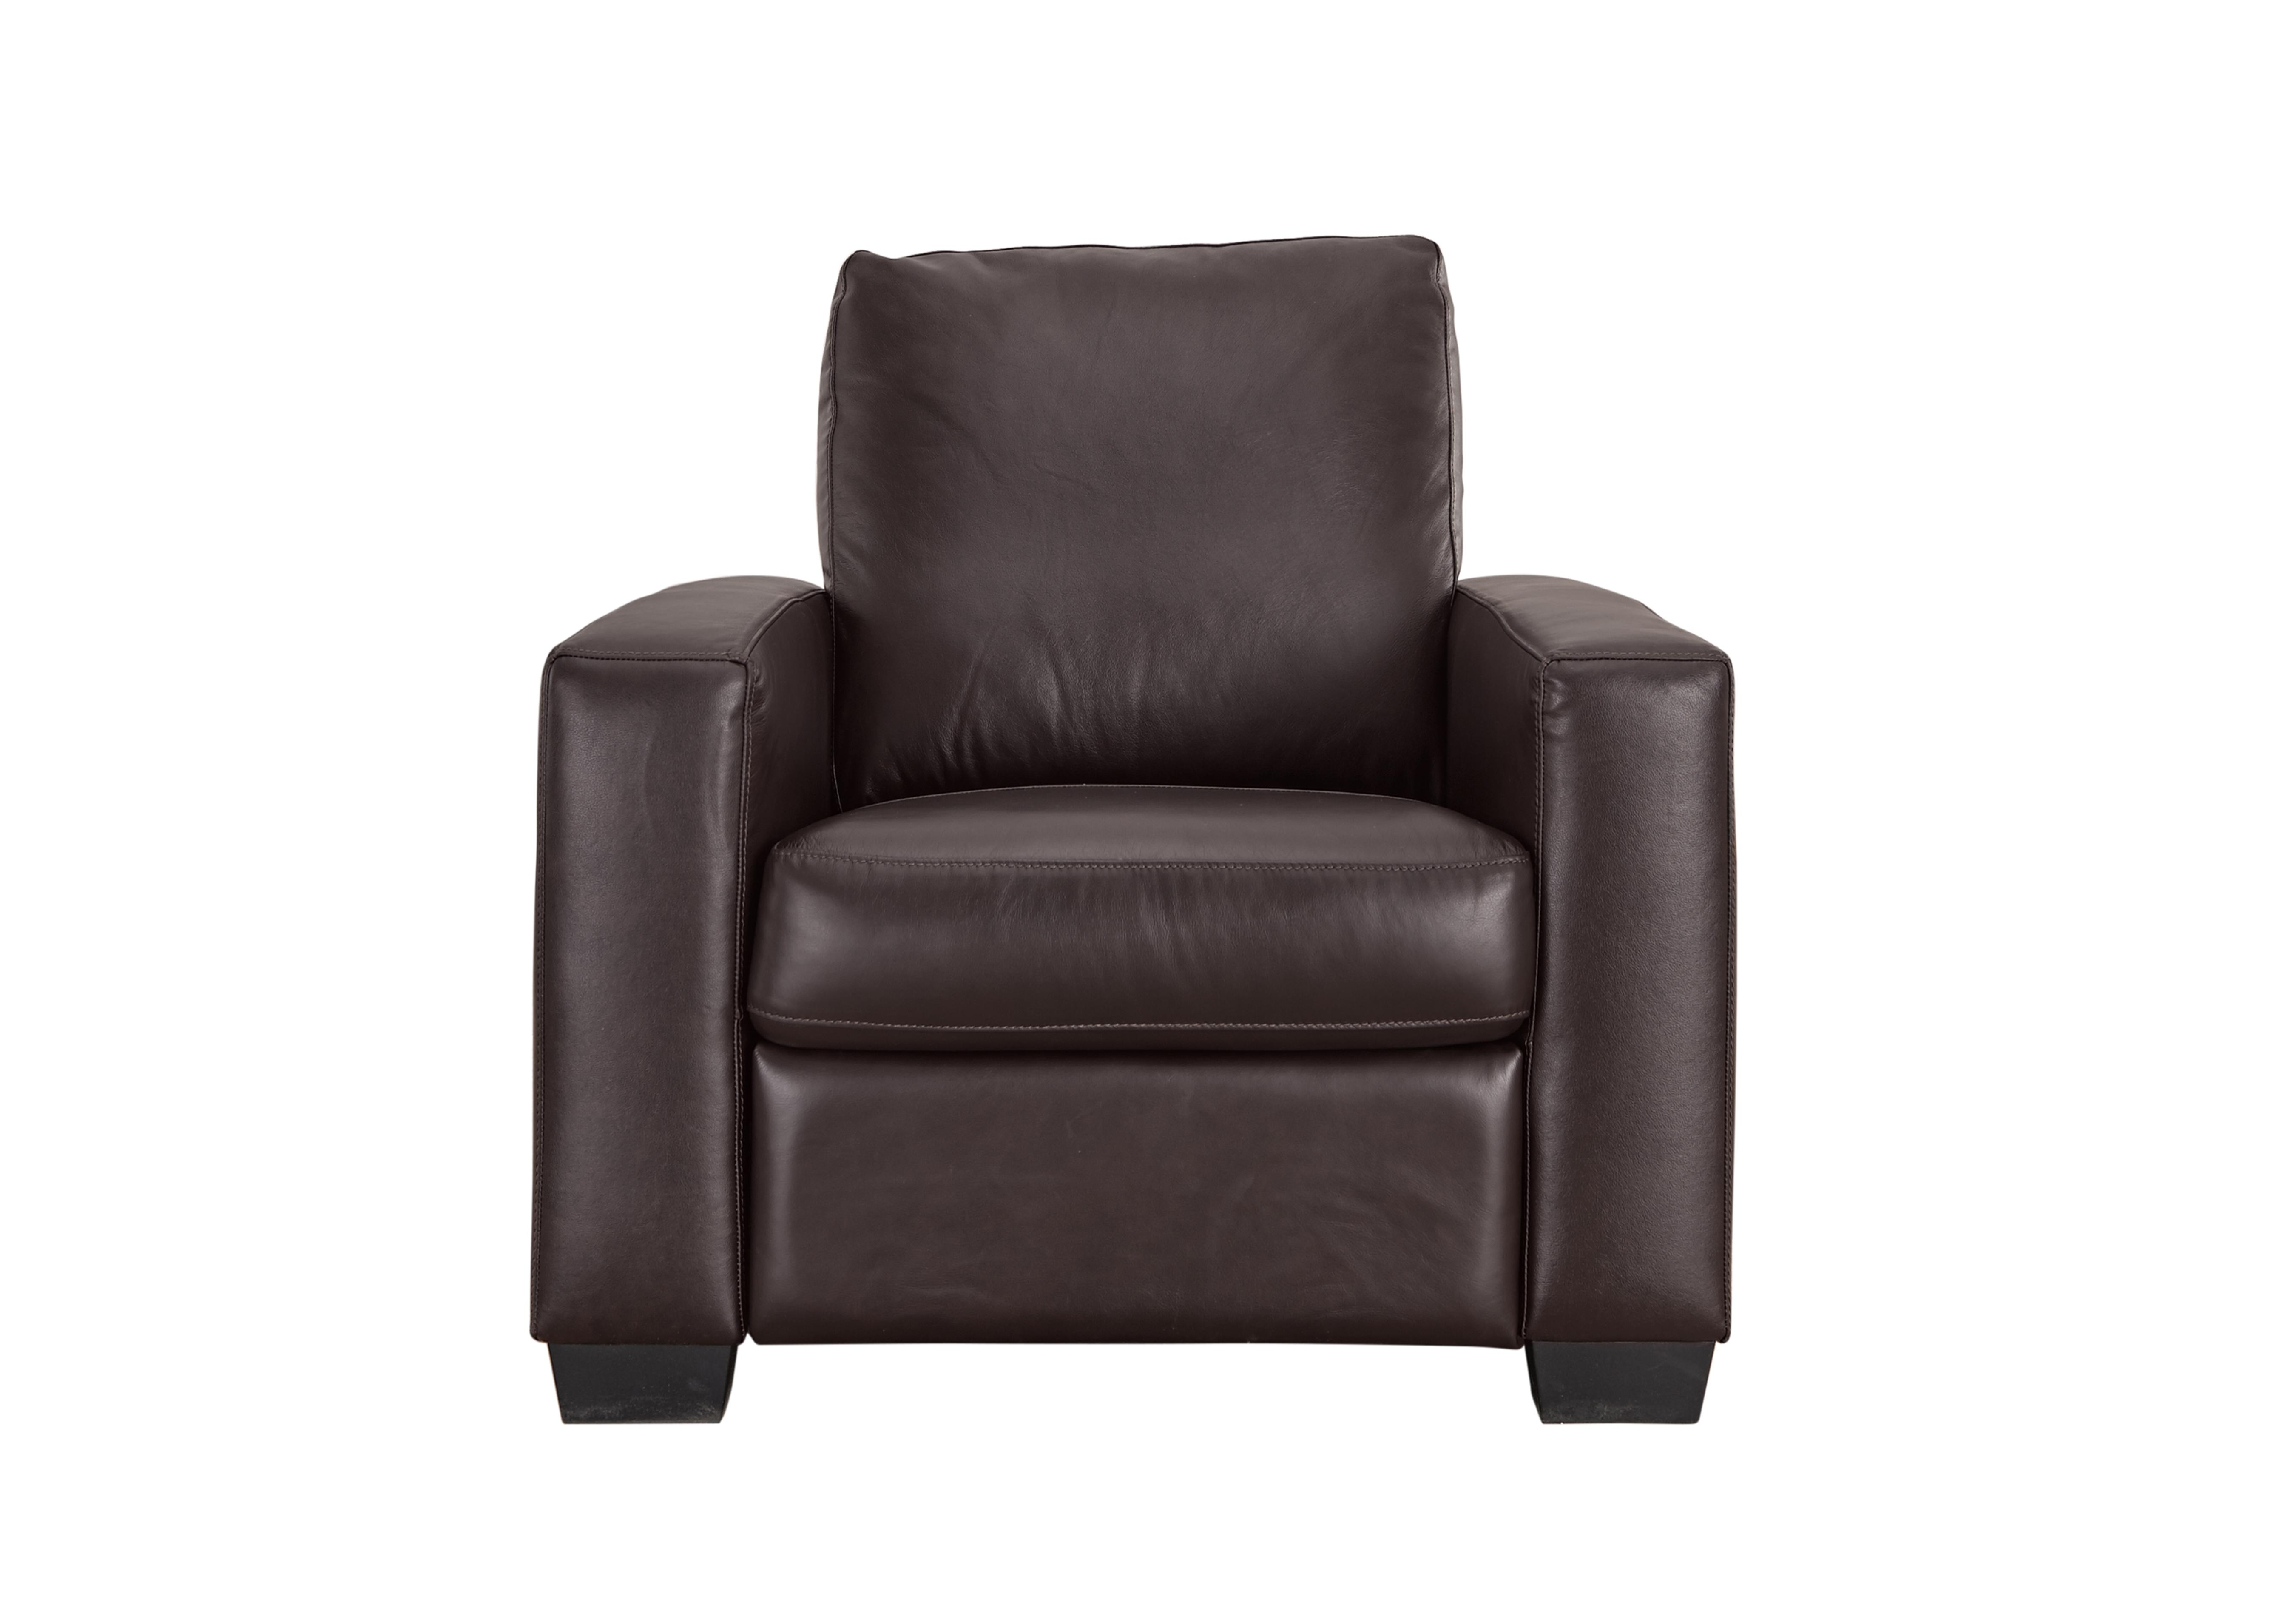 Save £250. Dante Leather Recliner Armchair